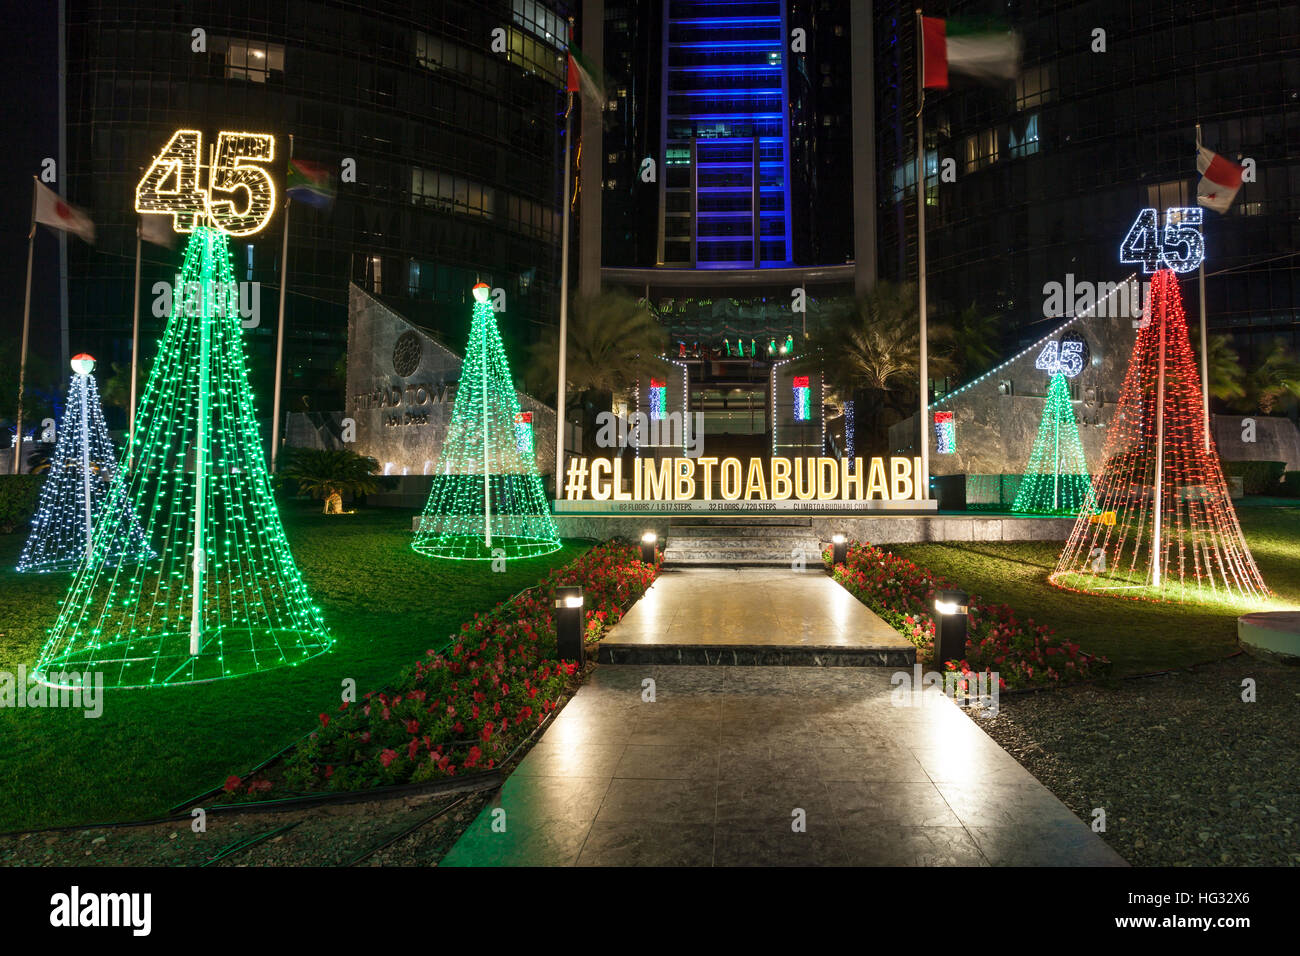 National Day decoration illuminated at night in front of the Etihad Towers in Abu Dhabi - Stock Image